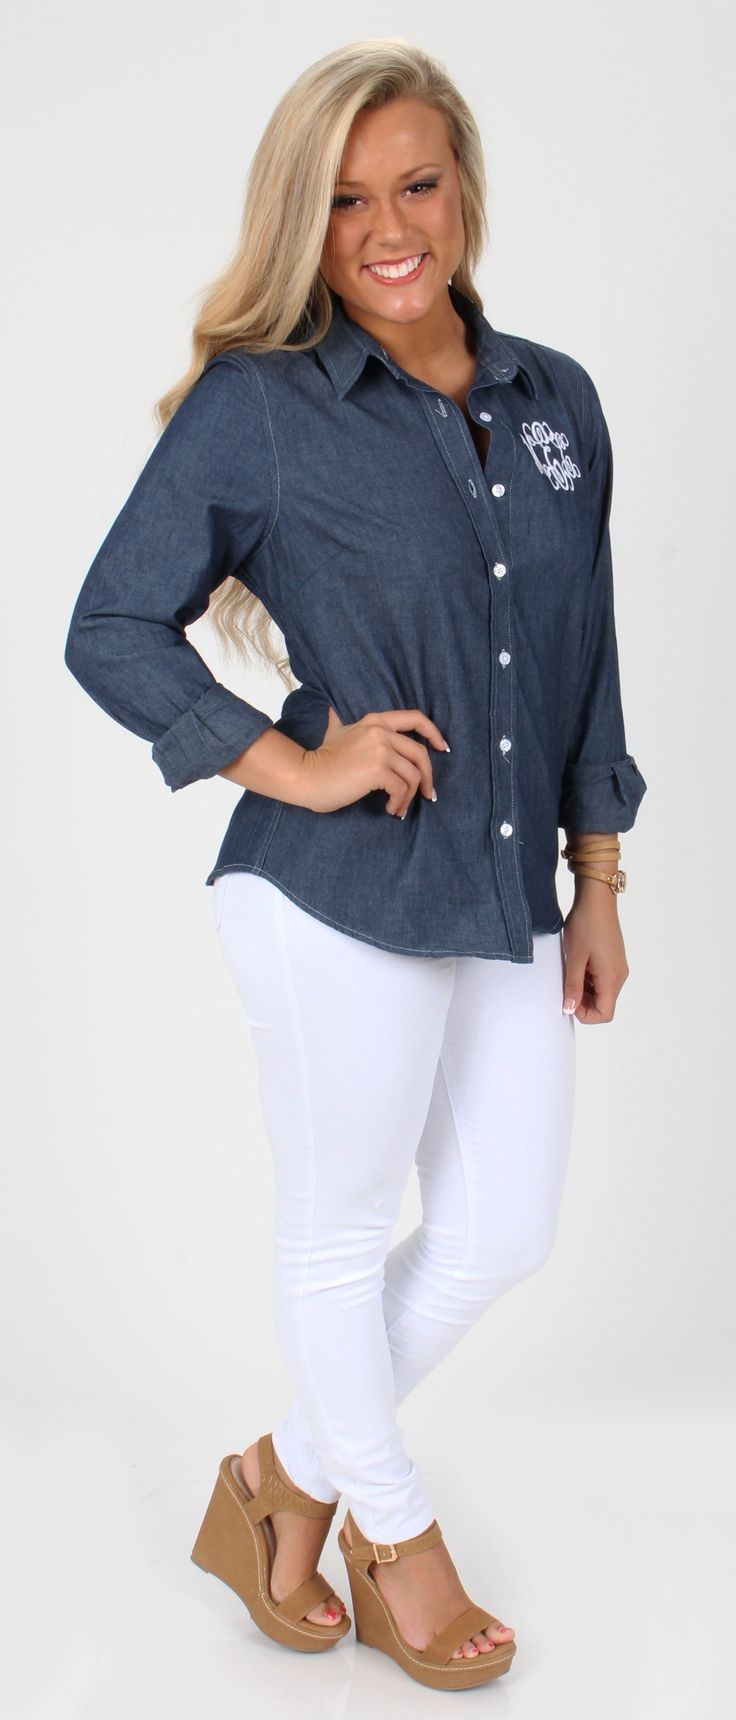 Hey Ladies, it is almost time to wear white pants again (Wahoo)! Get ready to rock this look with our $34.99 Monogrammed Ladies Long Sleeve Denim Shirt from marleylilly.com